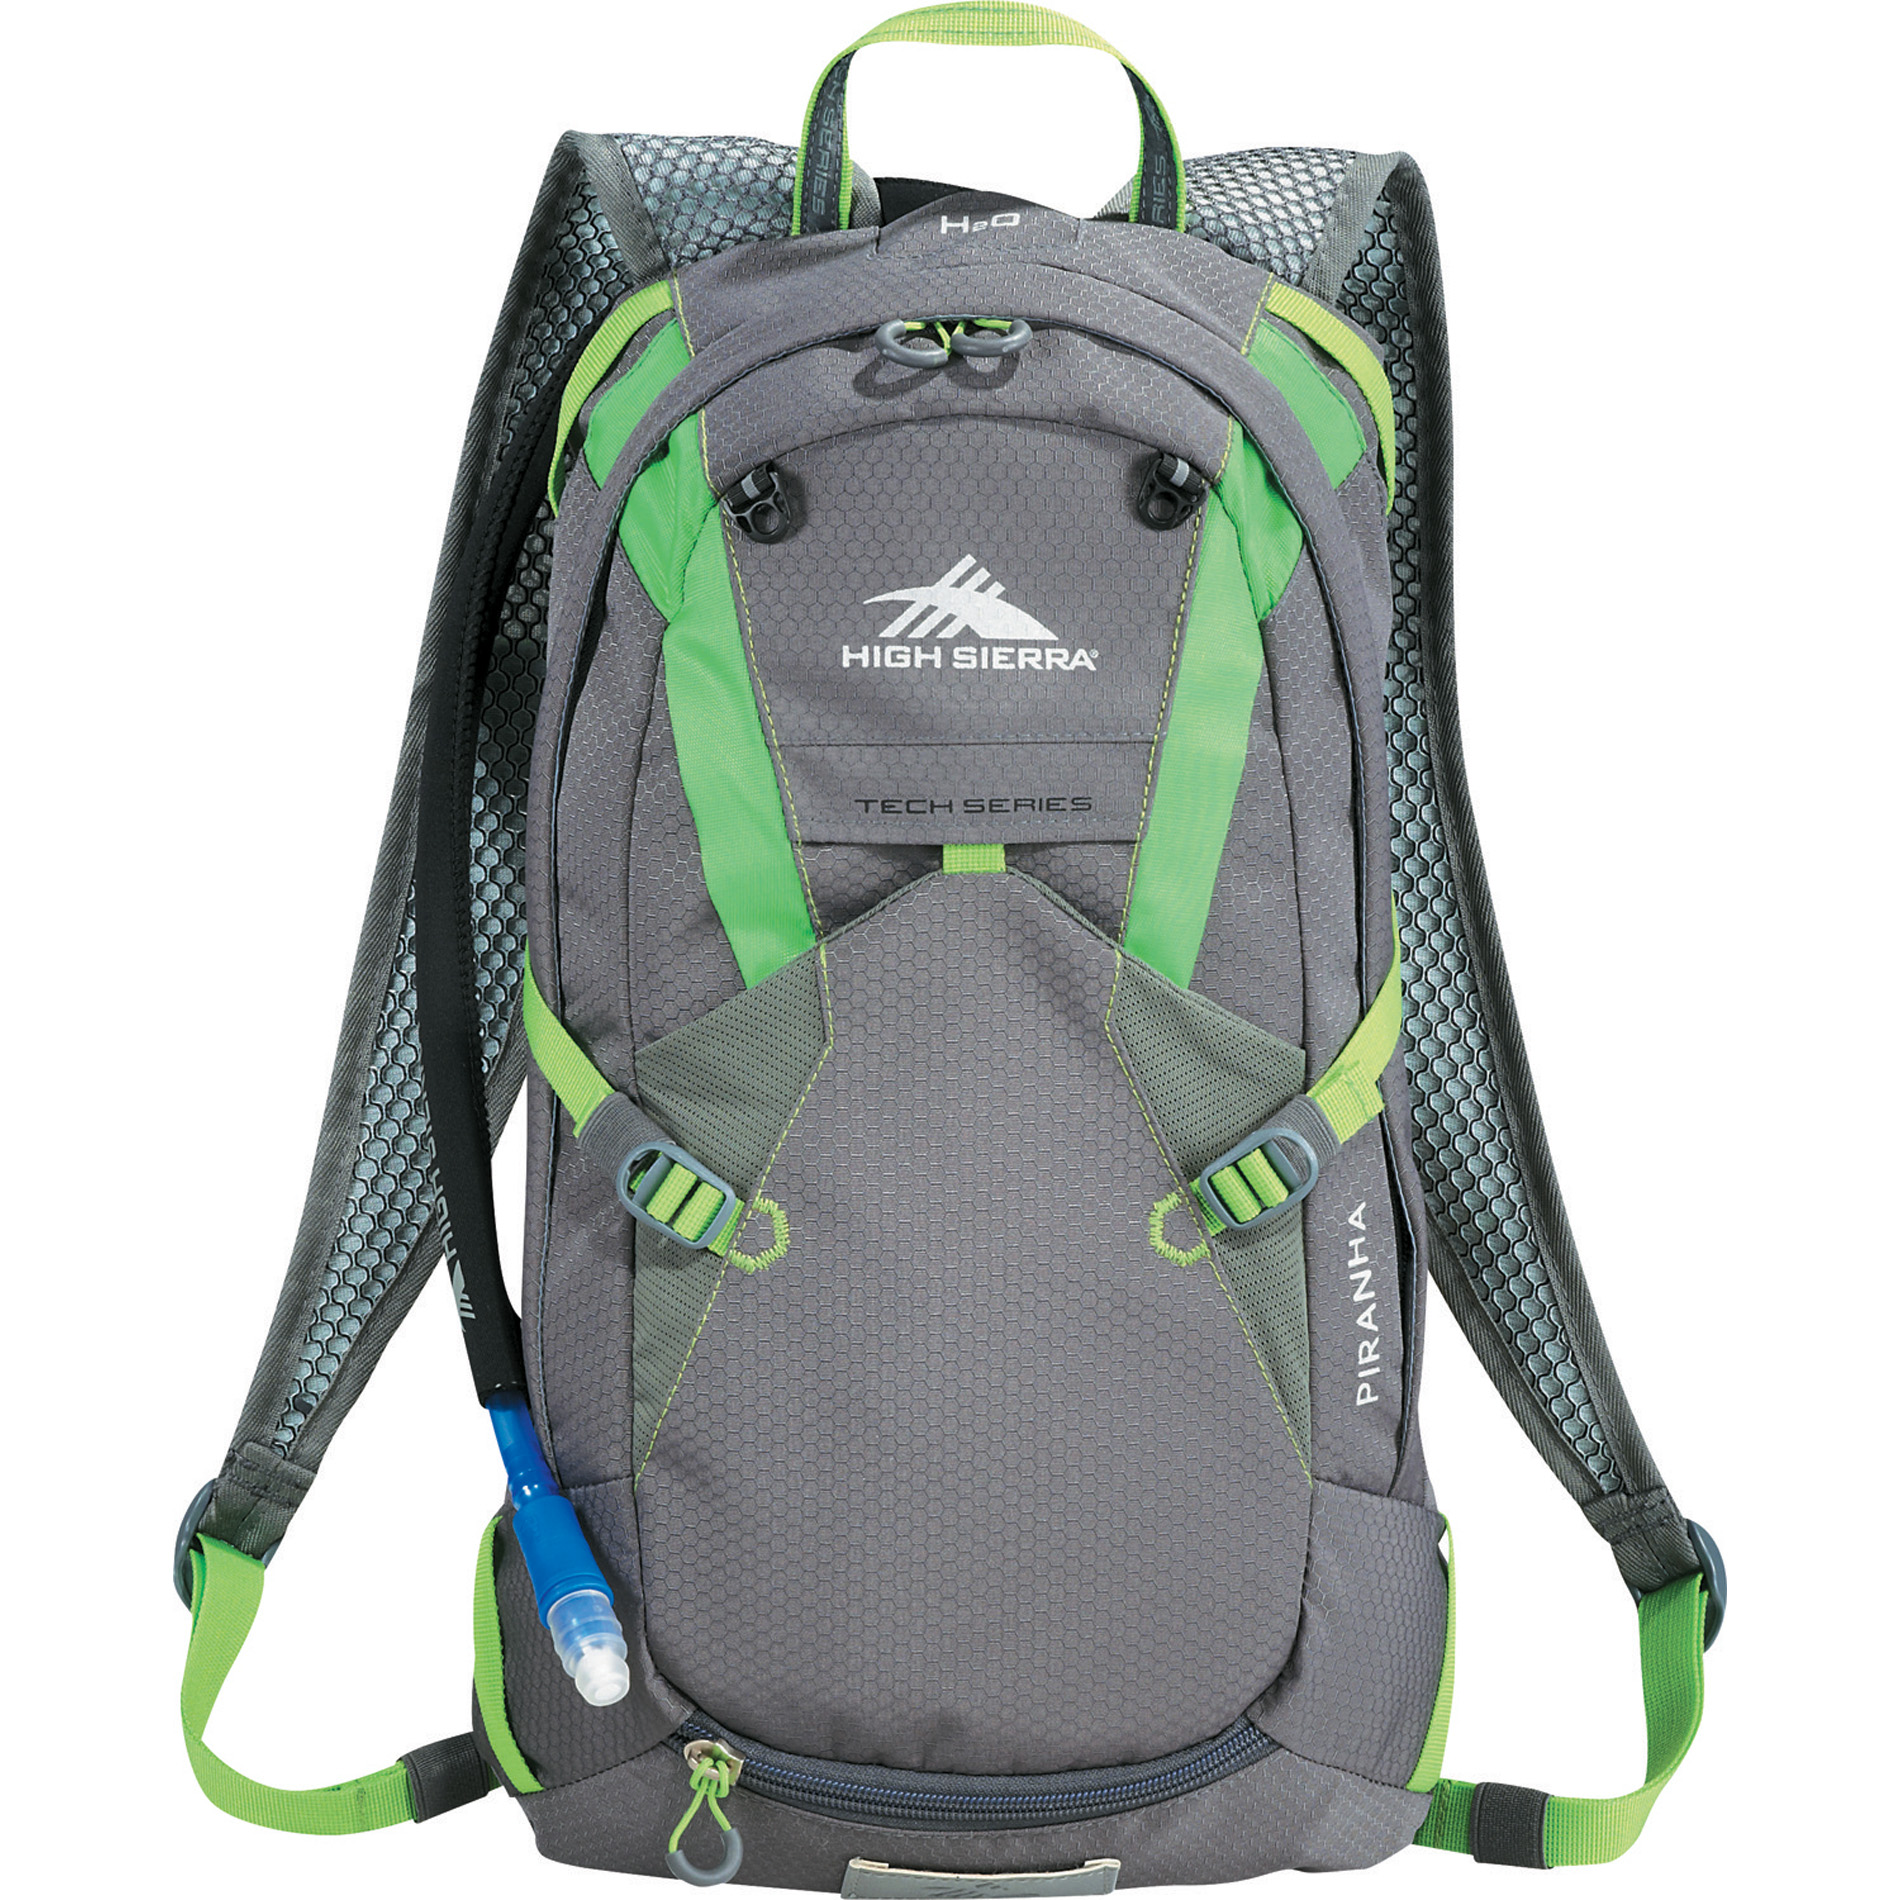 High Sierra 8051-94 - Piranha 10L Hydration Pack